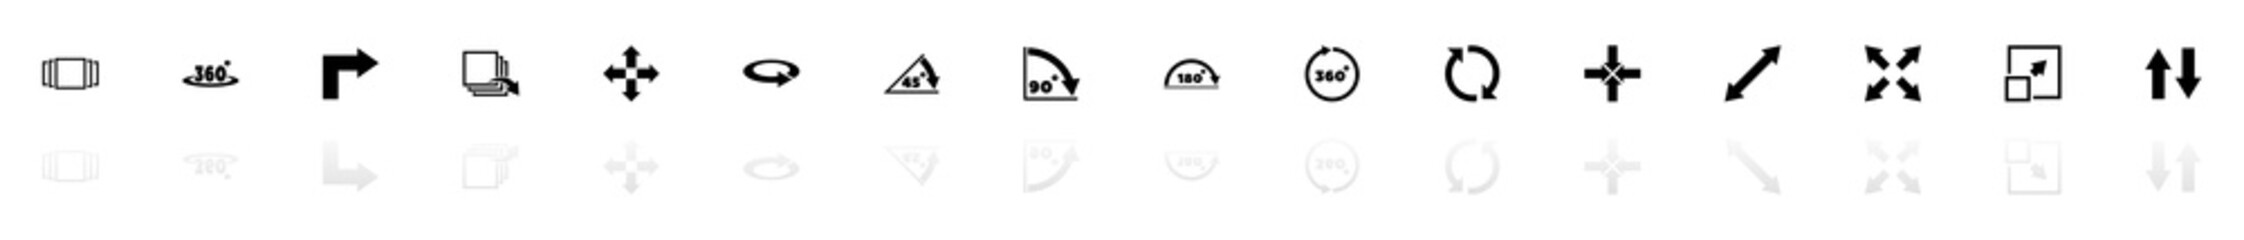 Rotate icons - Black horizontal Illustration symbol on White Background with a mirror Shadow reflection. Flat Vector Icon.